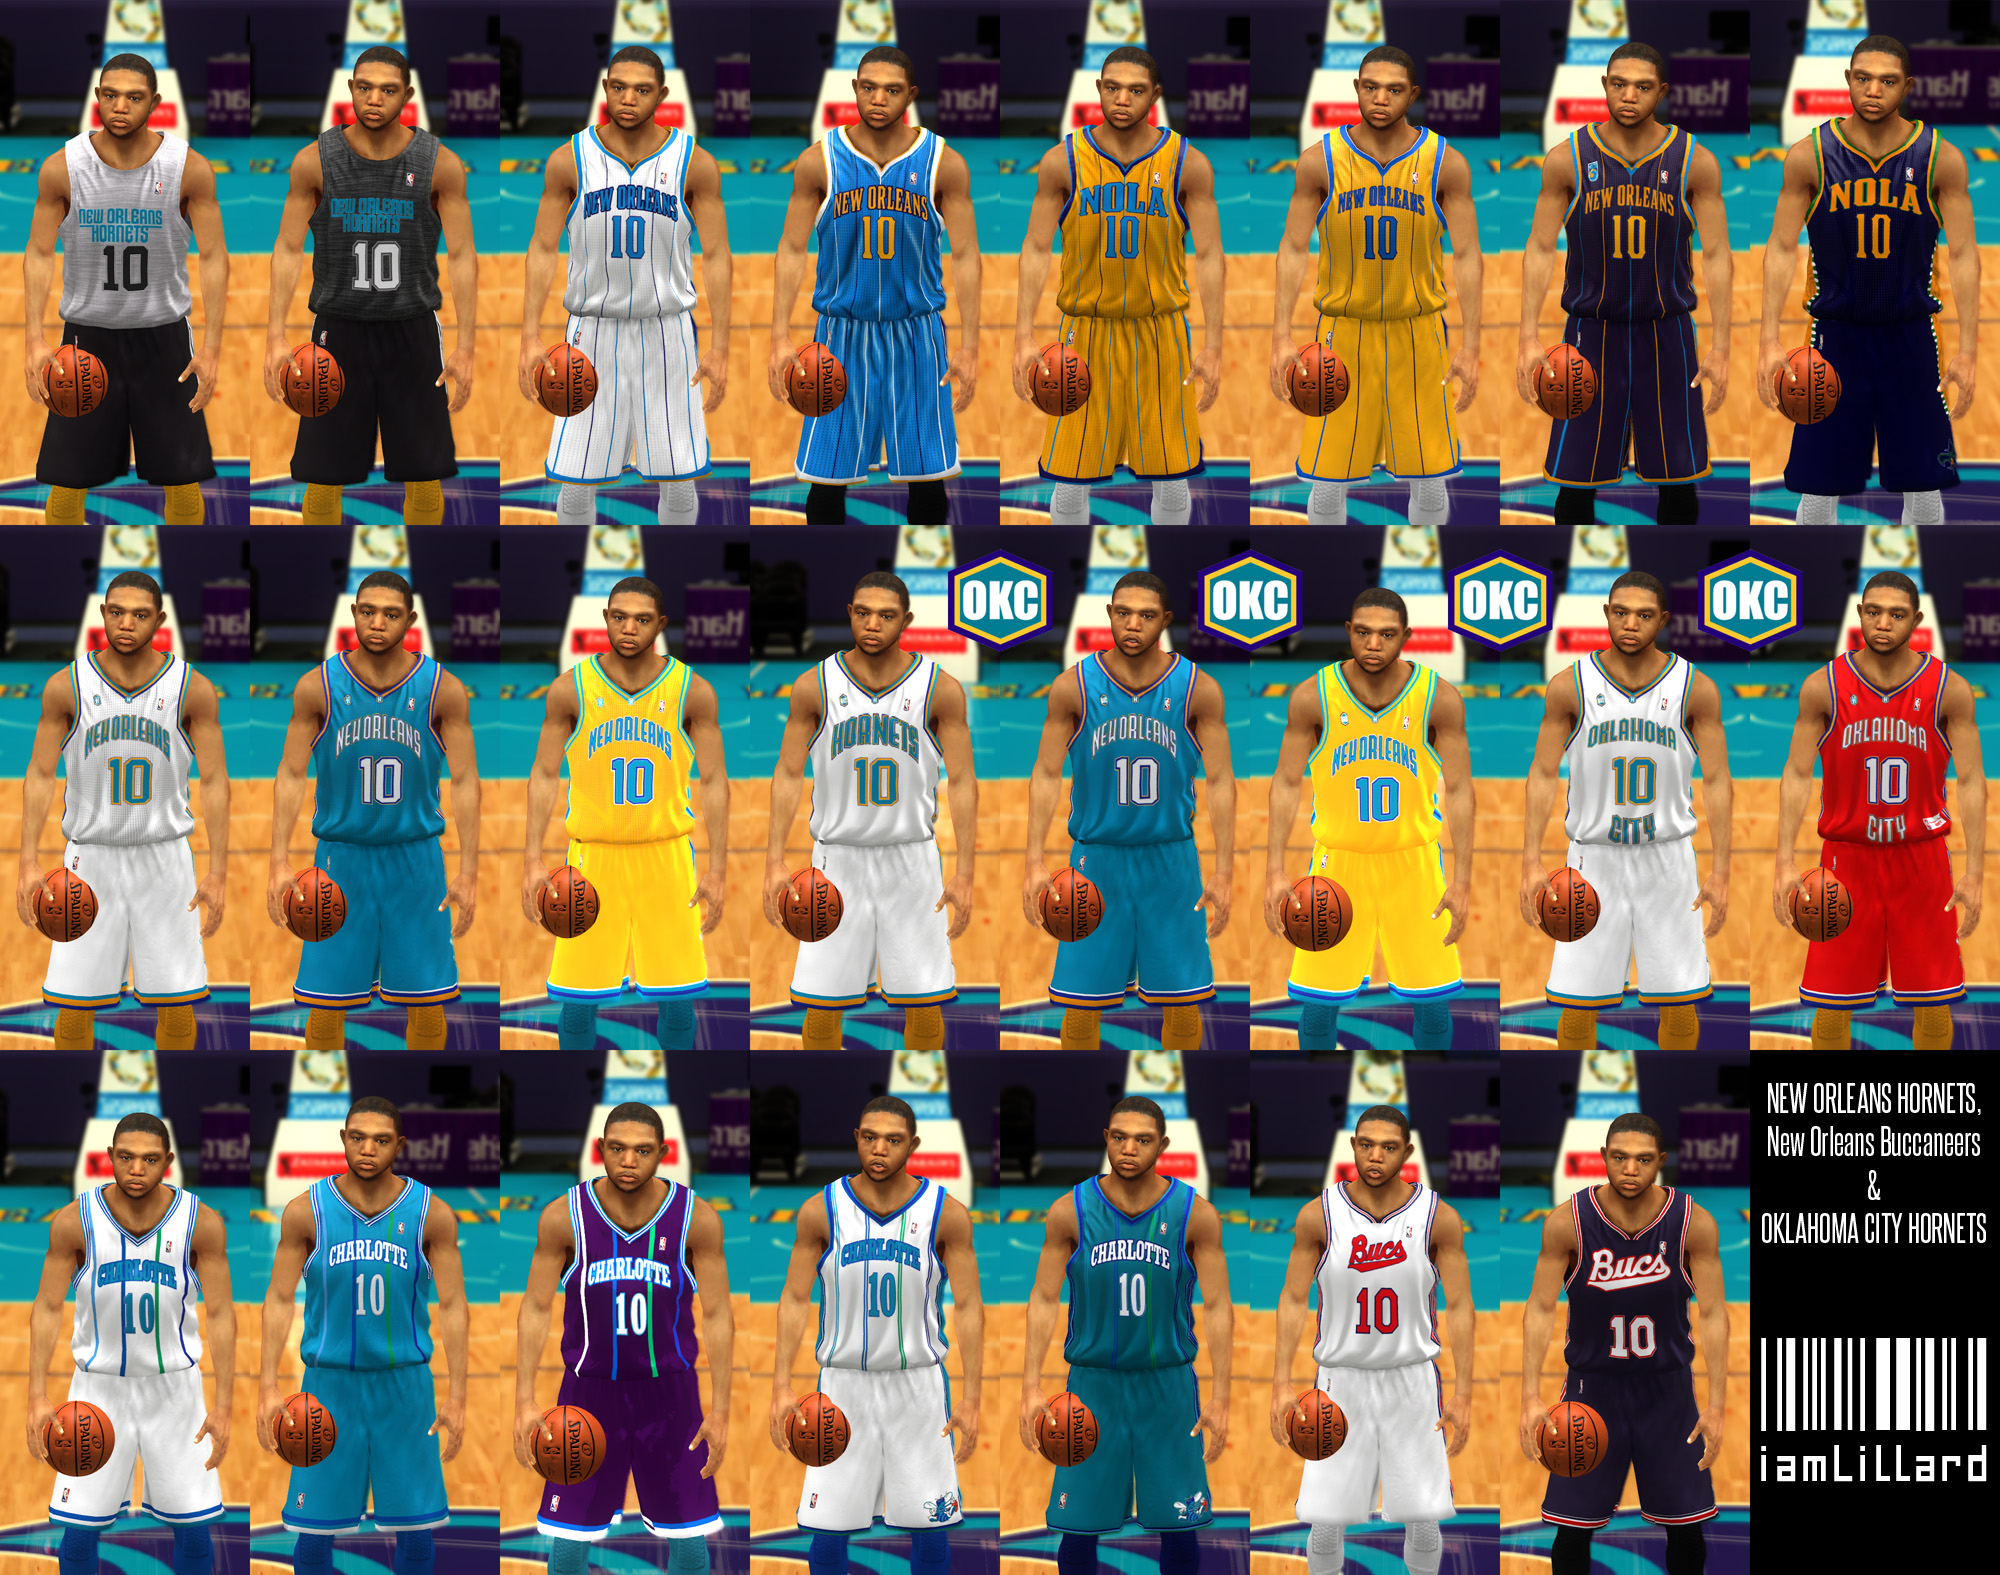 UJP New Orleans Hornets Jersey